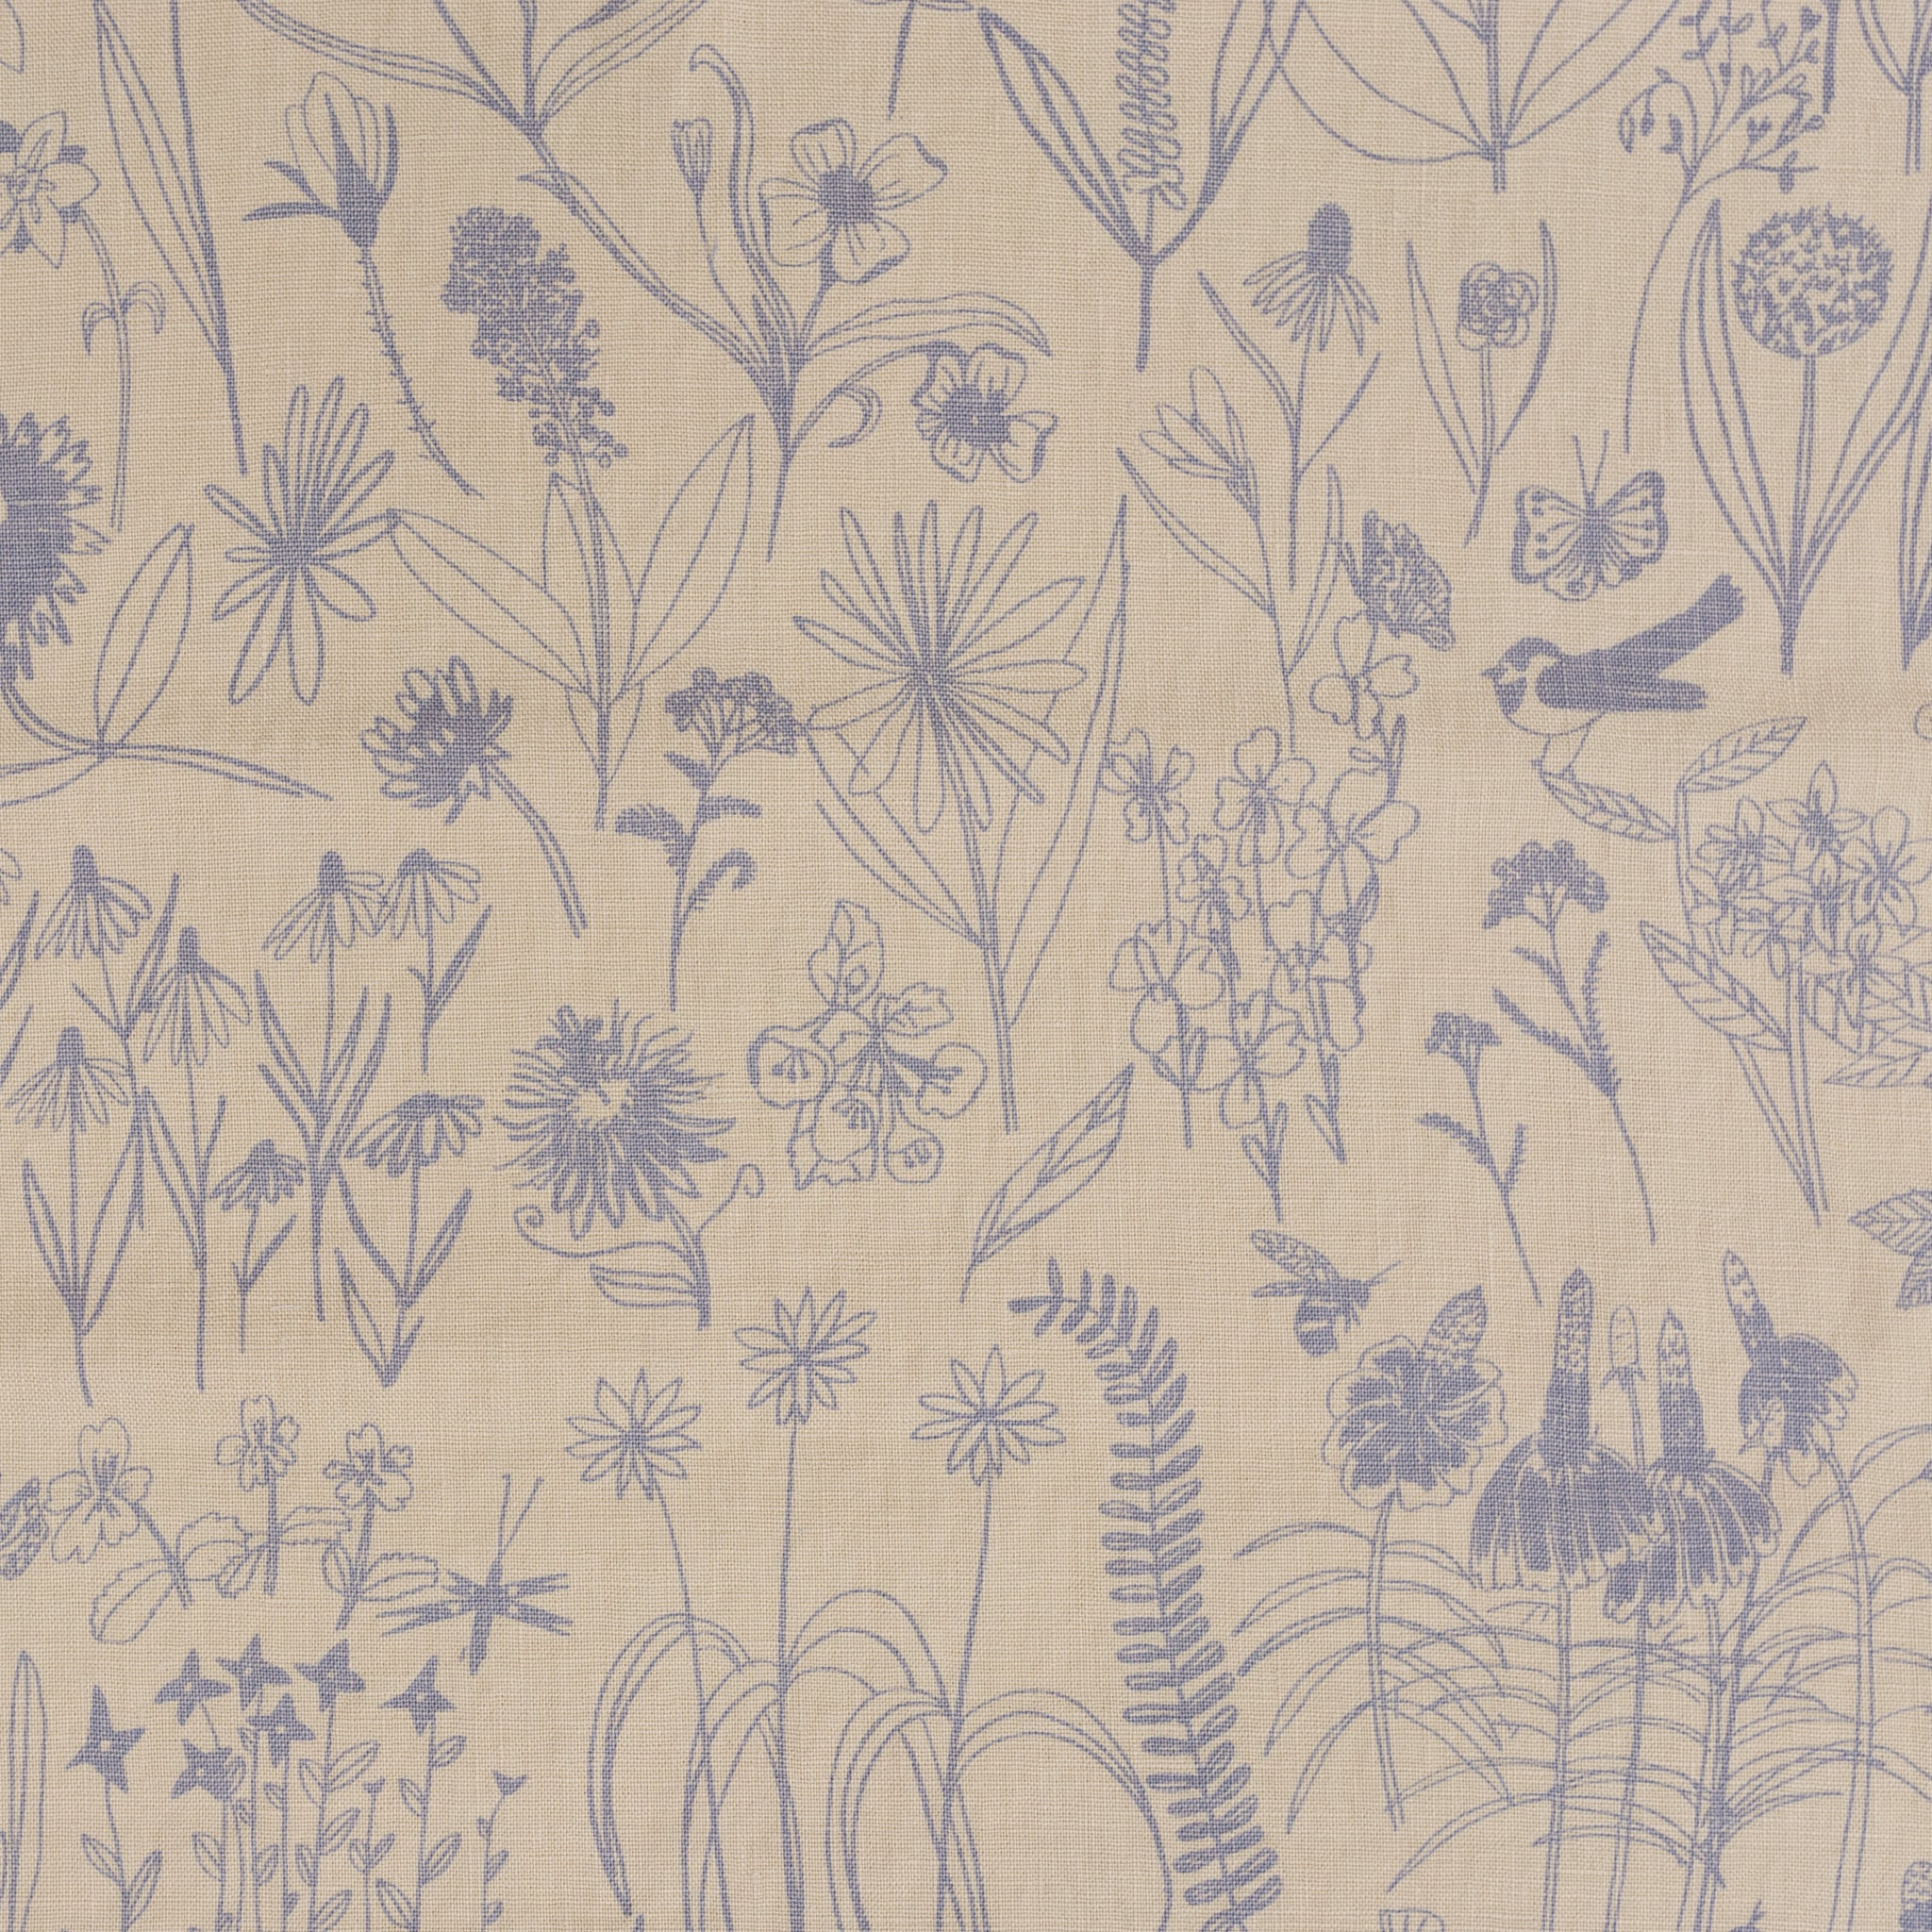 Linen fabric screen printed with bird and botanical illustrations